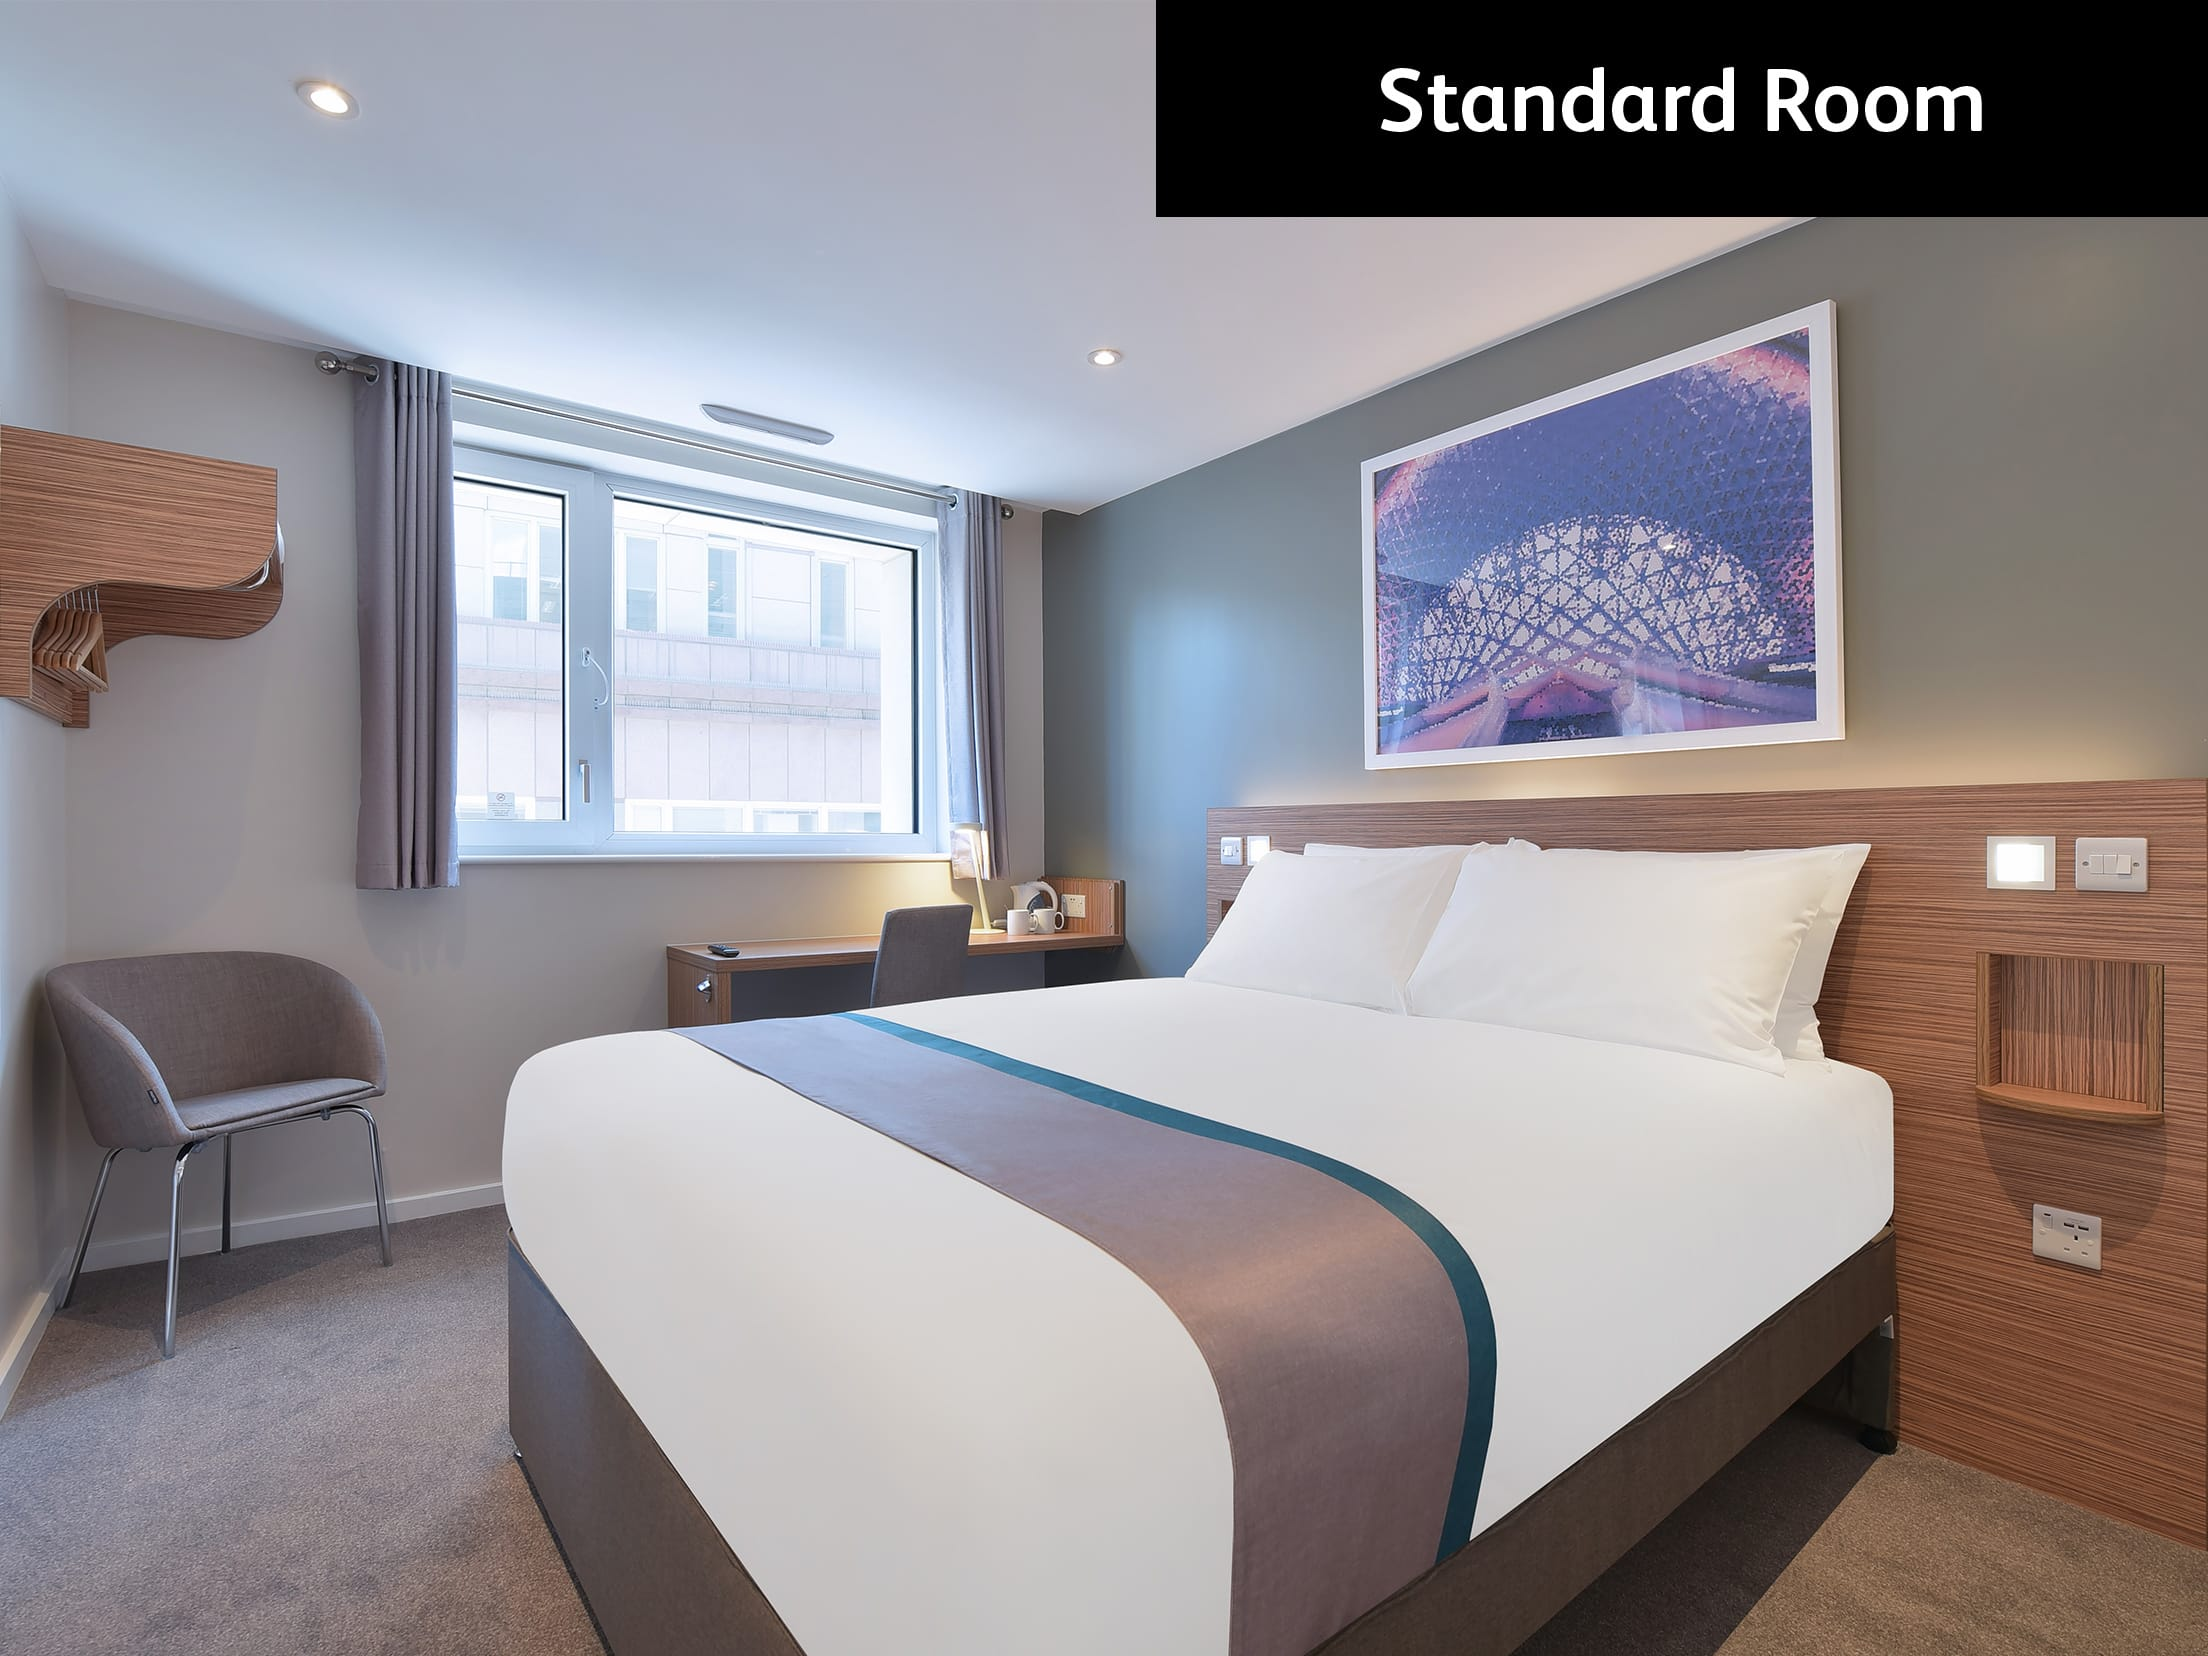 Our Travelodge London City hotel